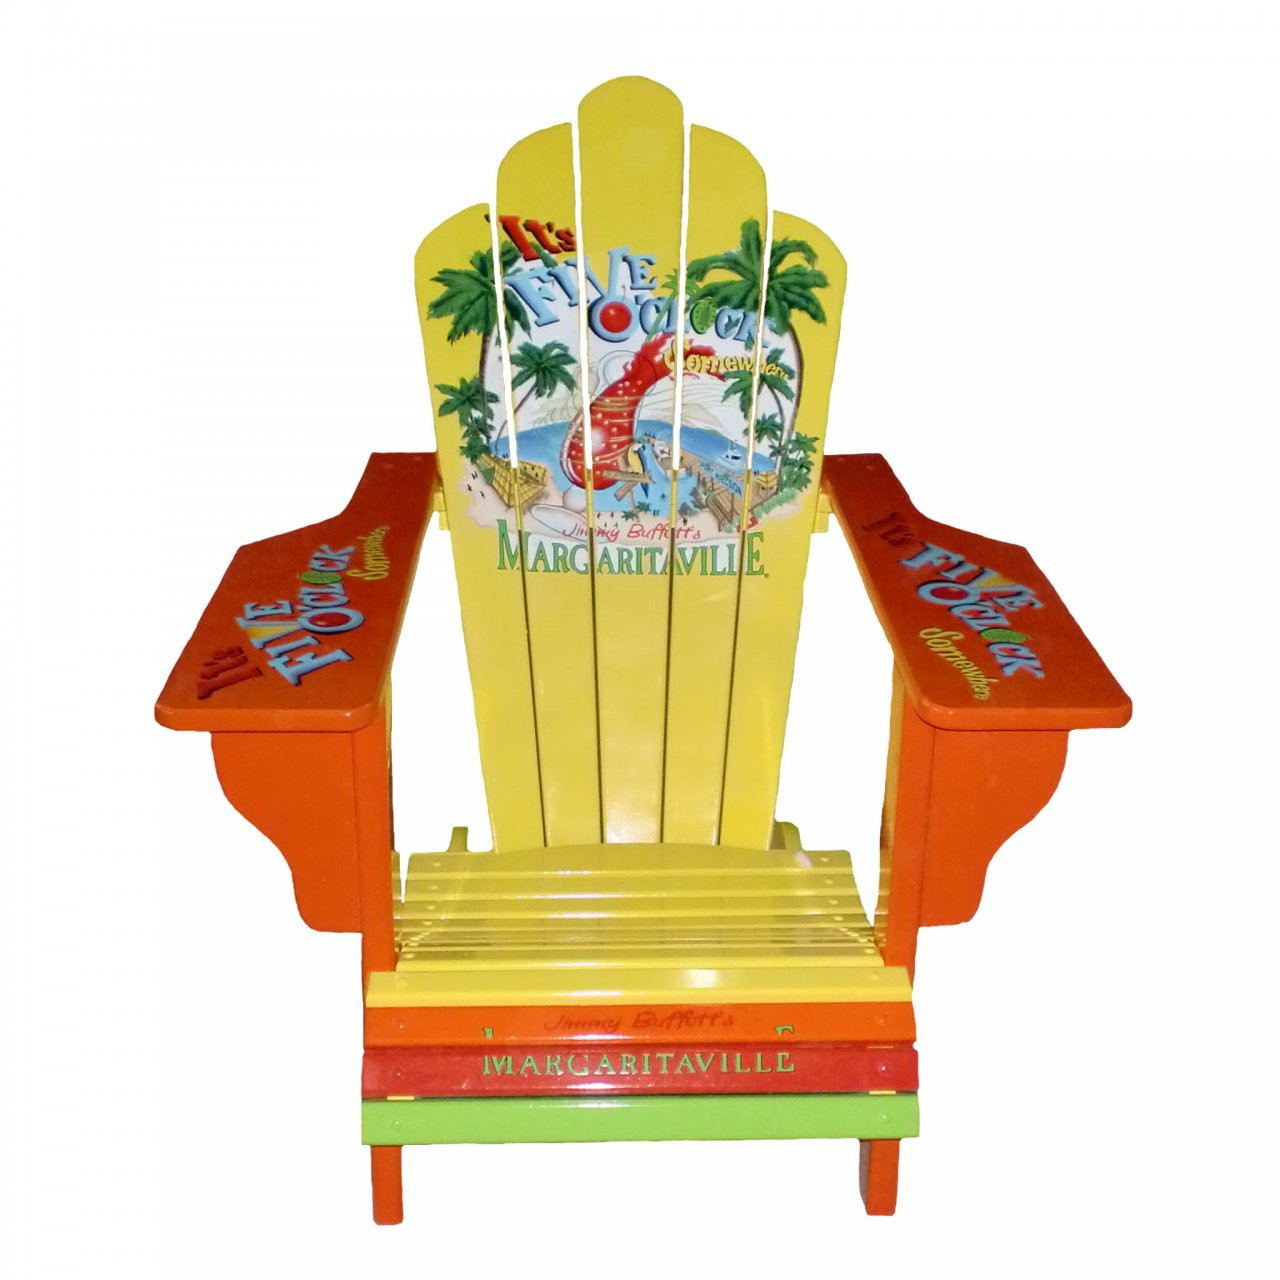 painted adirondack chairs swivel chair feet 5:00 - margaritaville apparel store